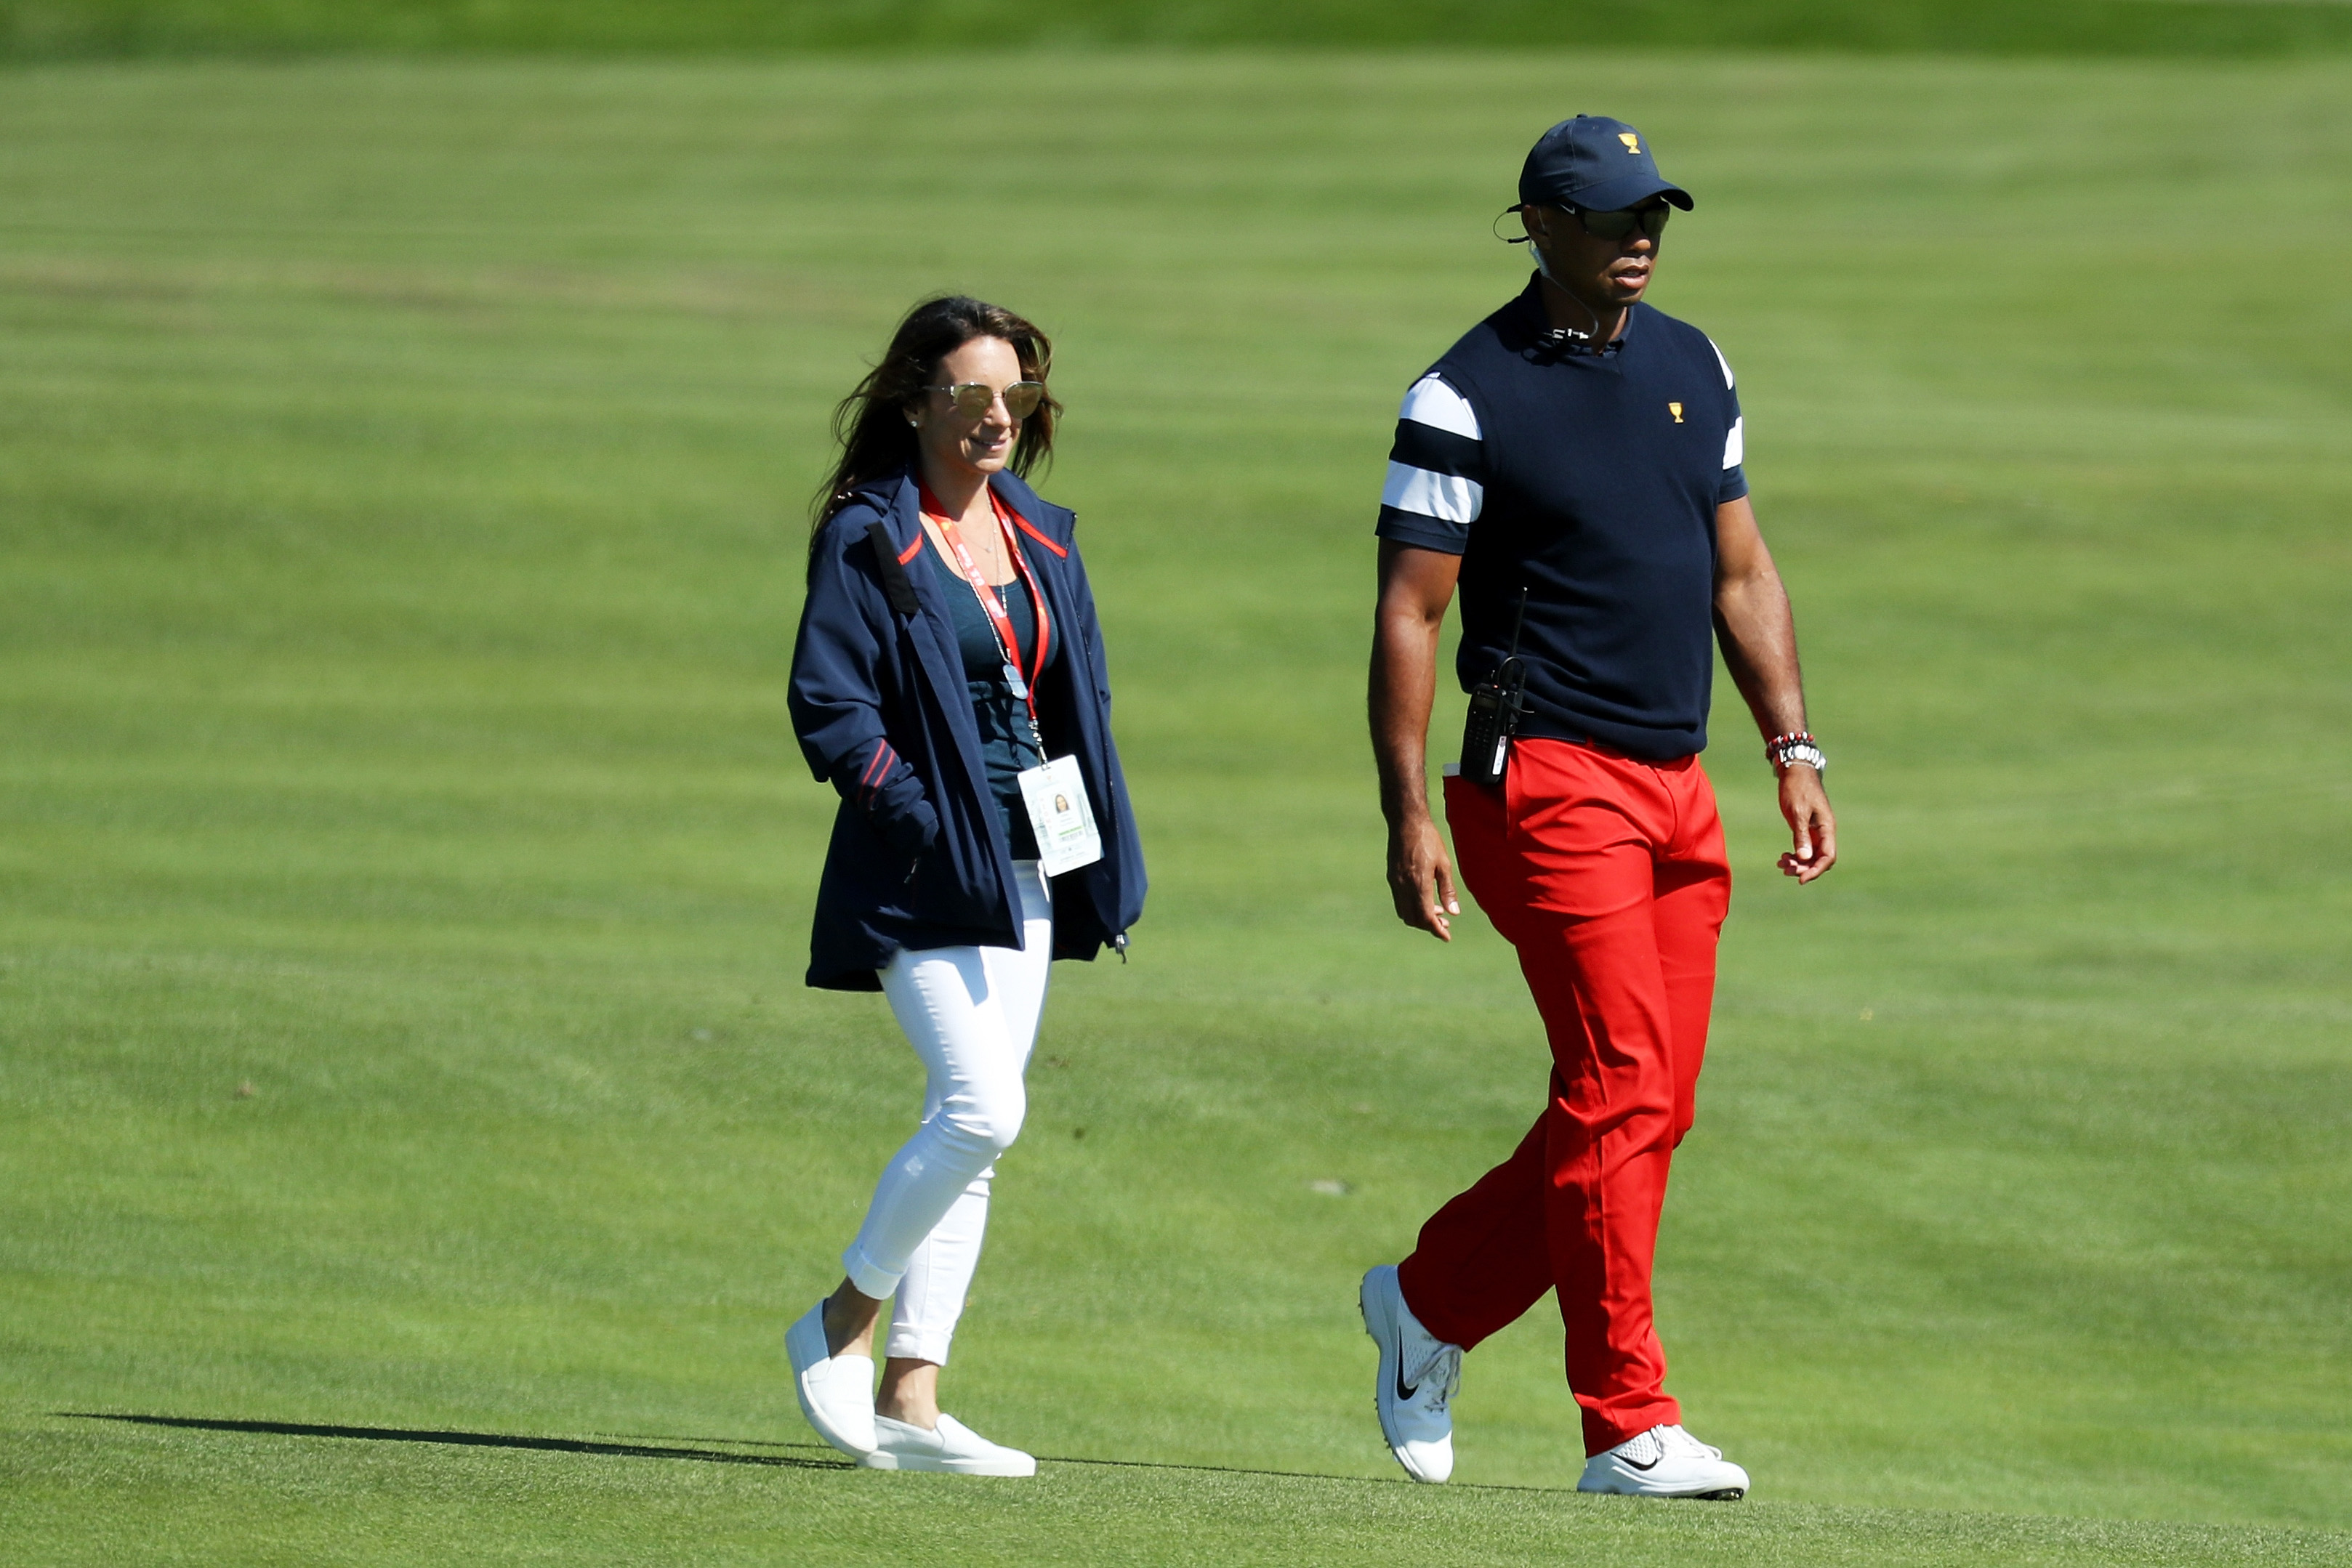 Captain's assistant Tiger Woods of the U.S. Team and Erica Herman walk on the first hole during Sunday singles matches of the Presidents Cup at Liberty National Golf Club on October 1, 2017, in Jersey City, New Jersey. (Getty Images)